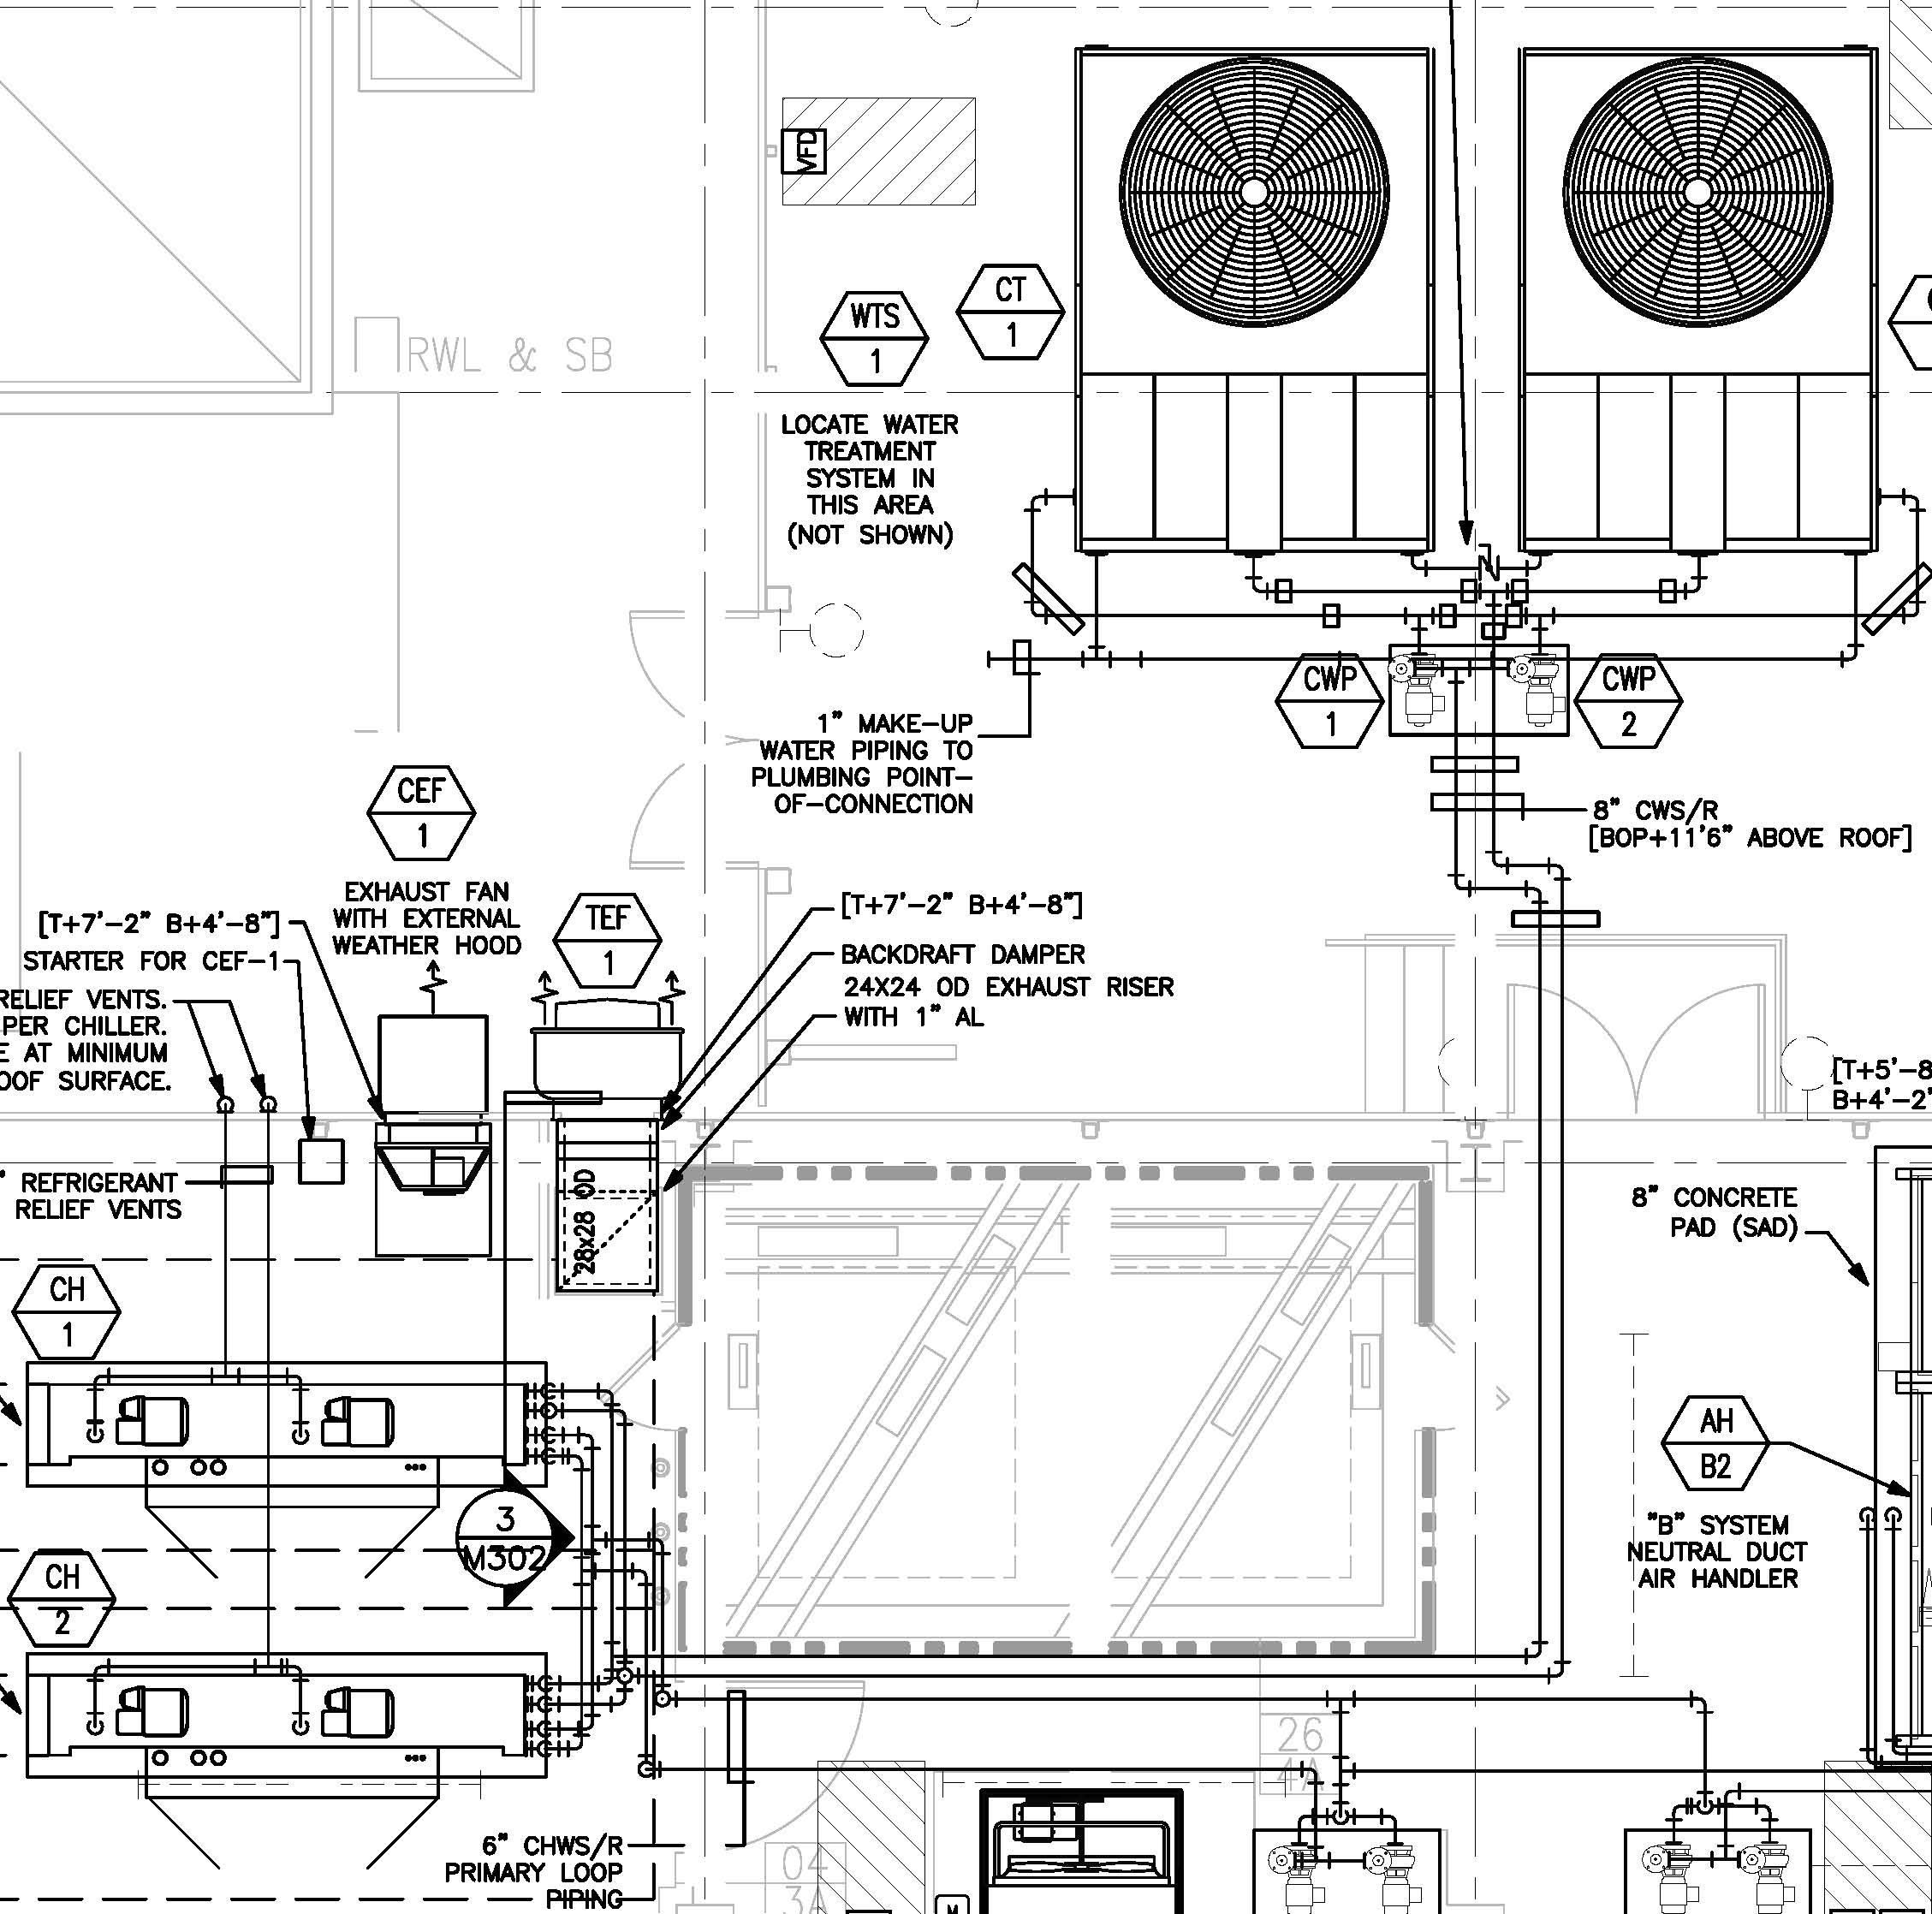 Ford Tractor Parts Diagram 1066 International Tractor Wiring Diagram Mastering Wiring Diagram • Of Ford Tractor Parts Diagram